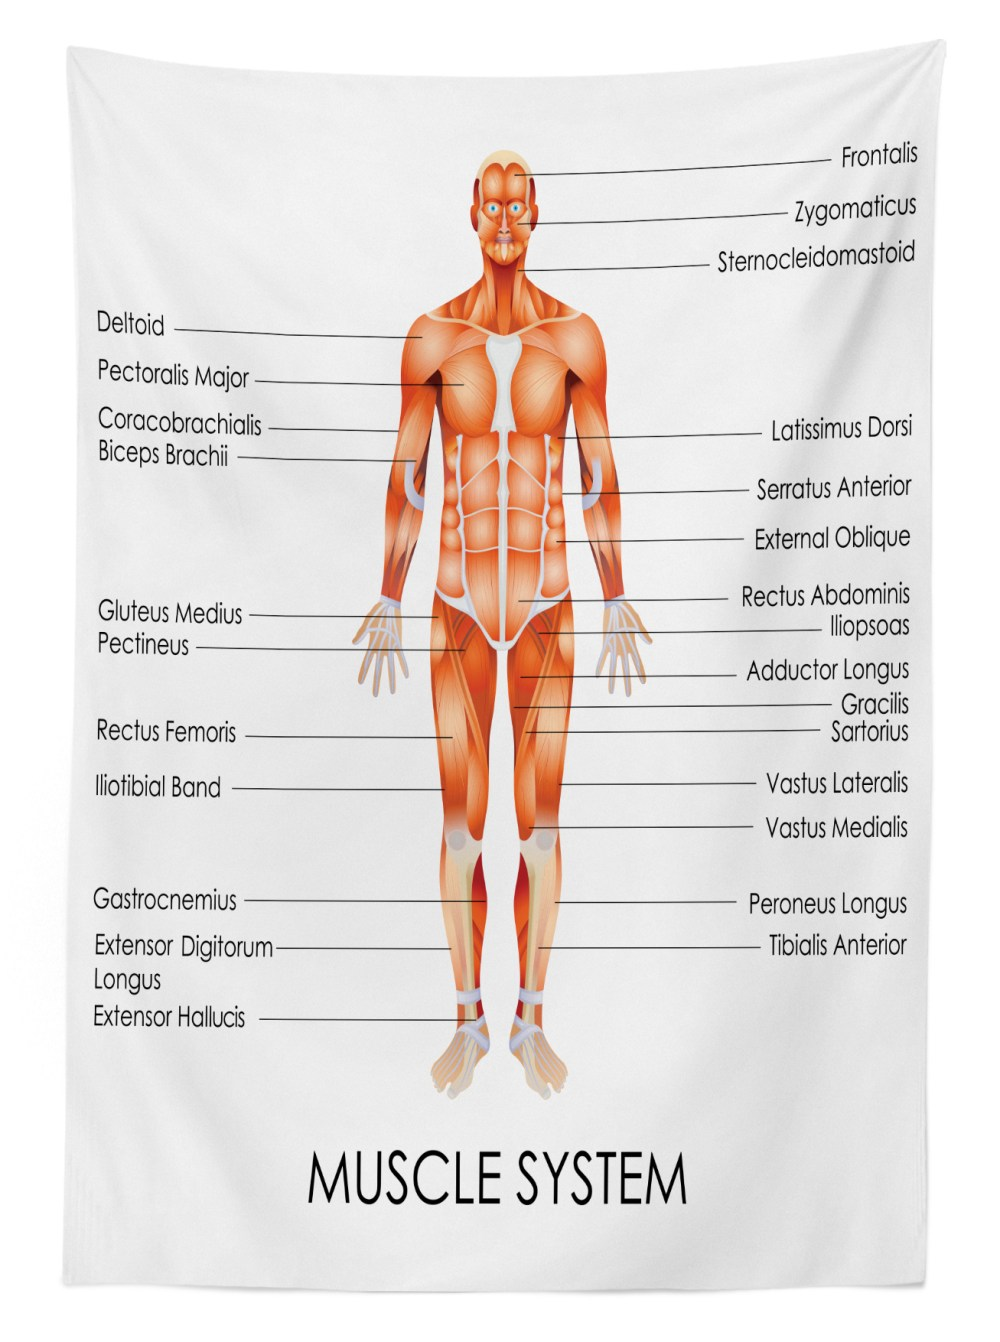 medium resolution of human anatomy outdoor tablecloth muscle system diagram of man body features biological elements medical heath image decorative washable fabric picnic